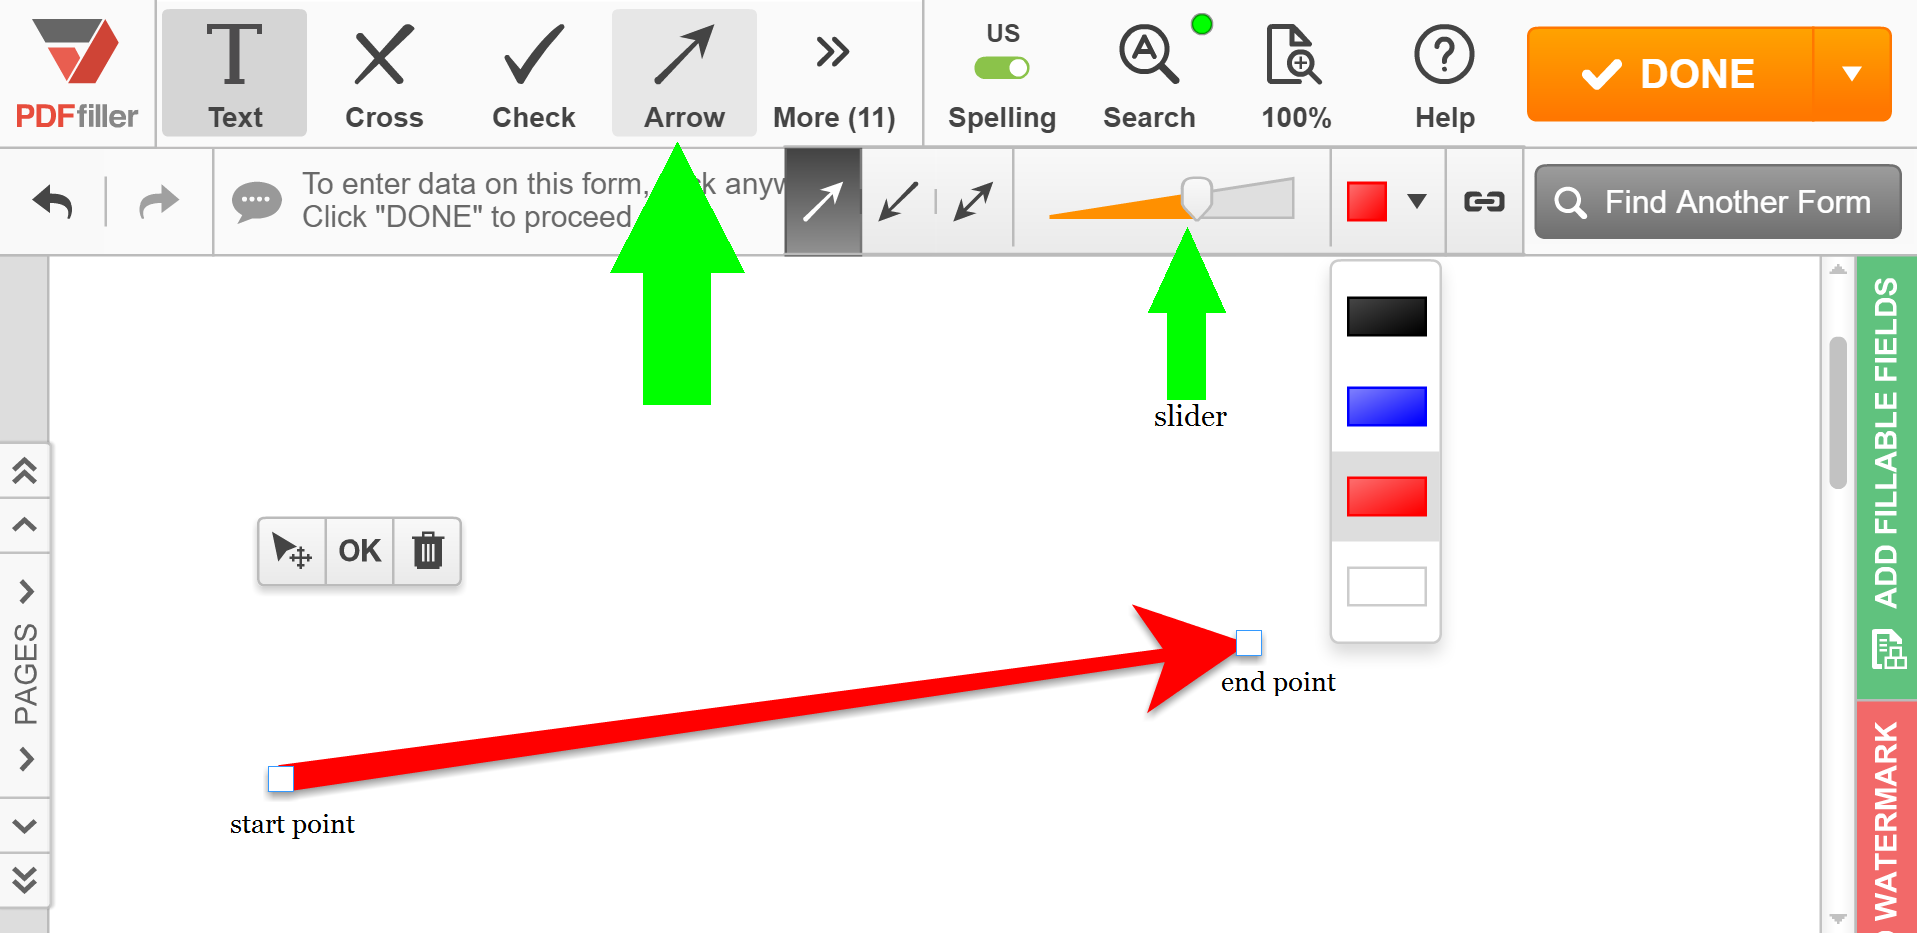 Draw Arrows In PDF. Search, Edit, Fill, Sign, Fax & Save ...